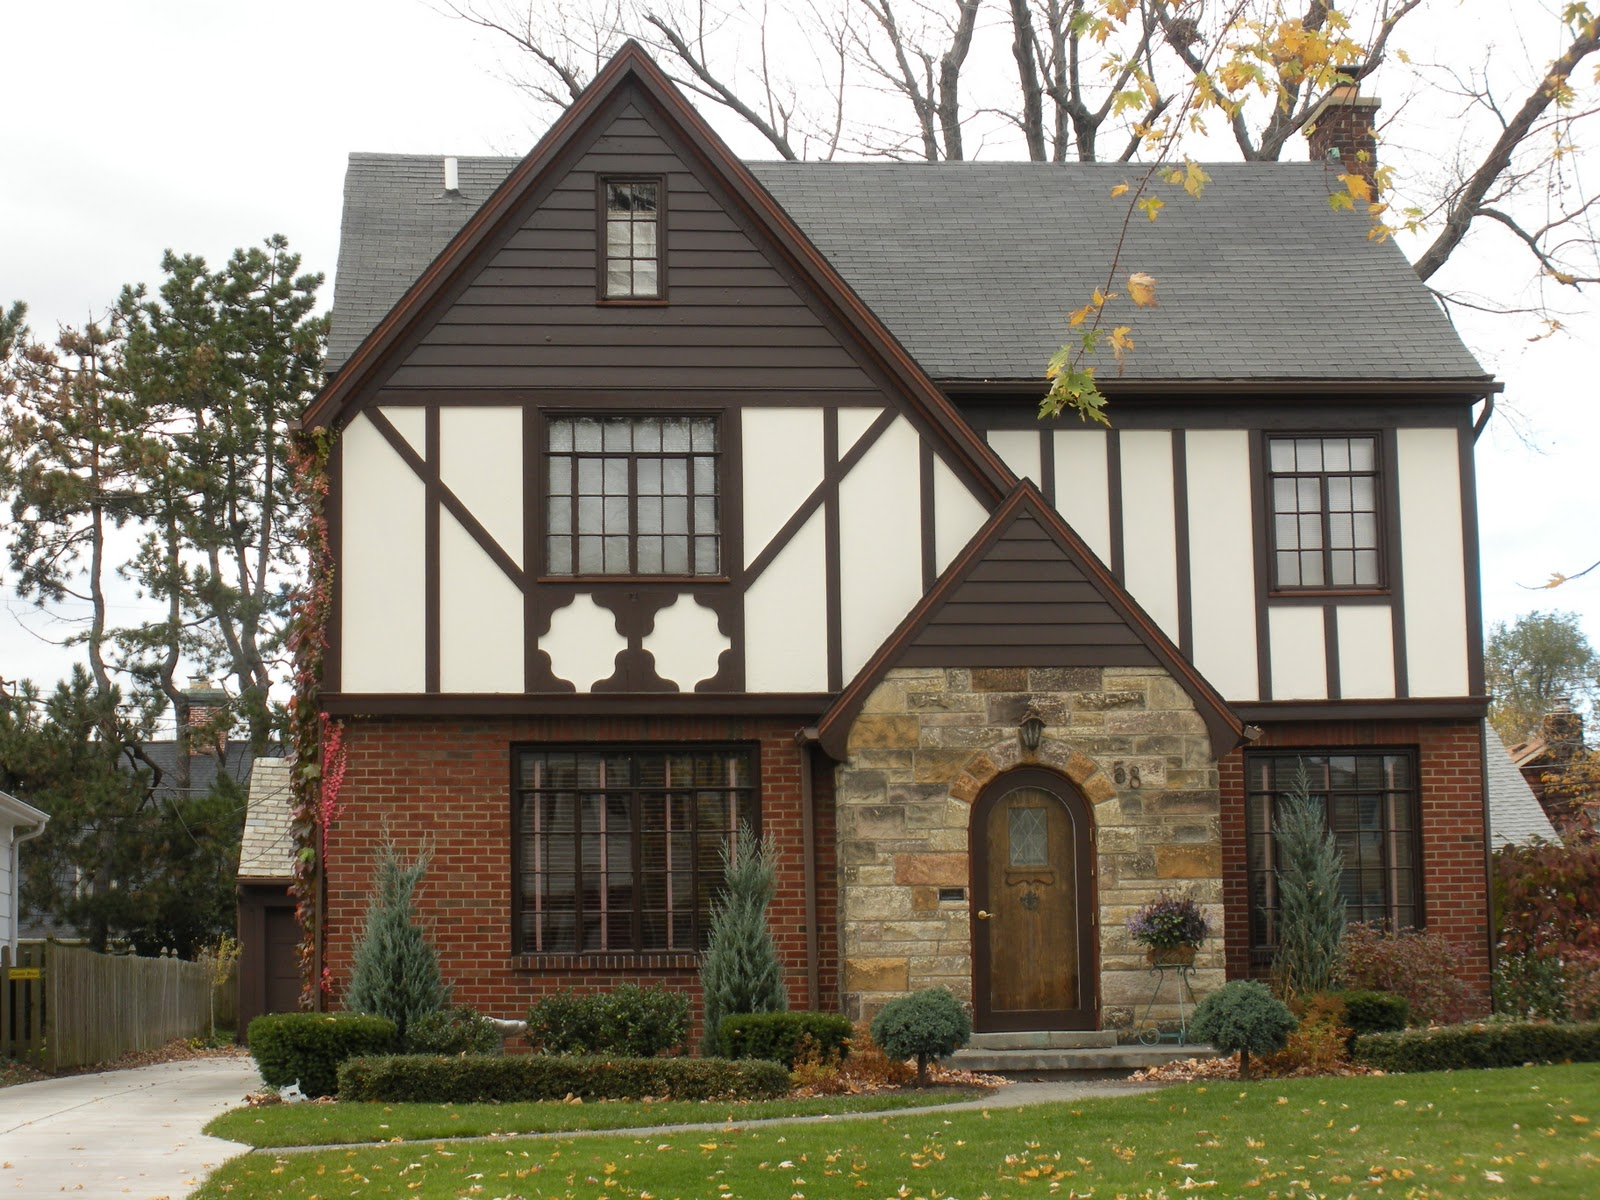 Top 15 house designs and architectural styles to ignite for Historic tudor house plans